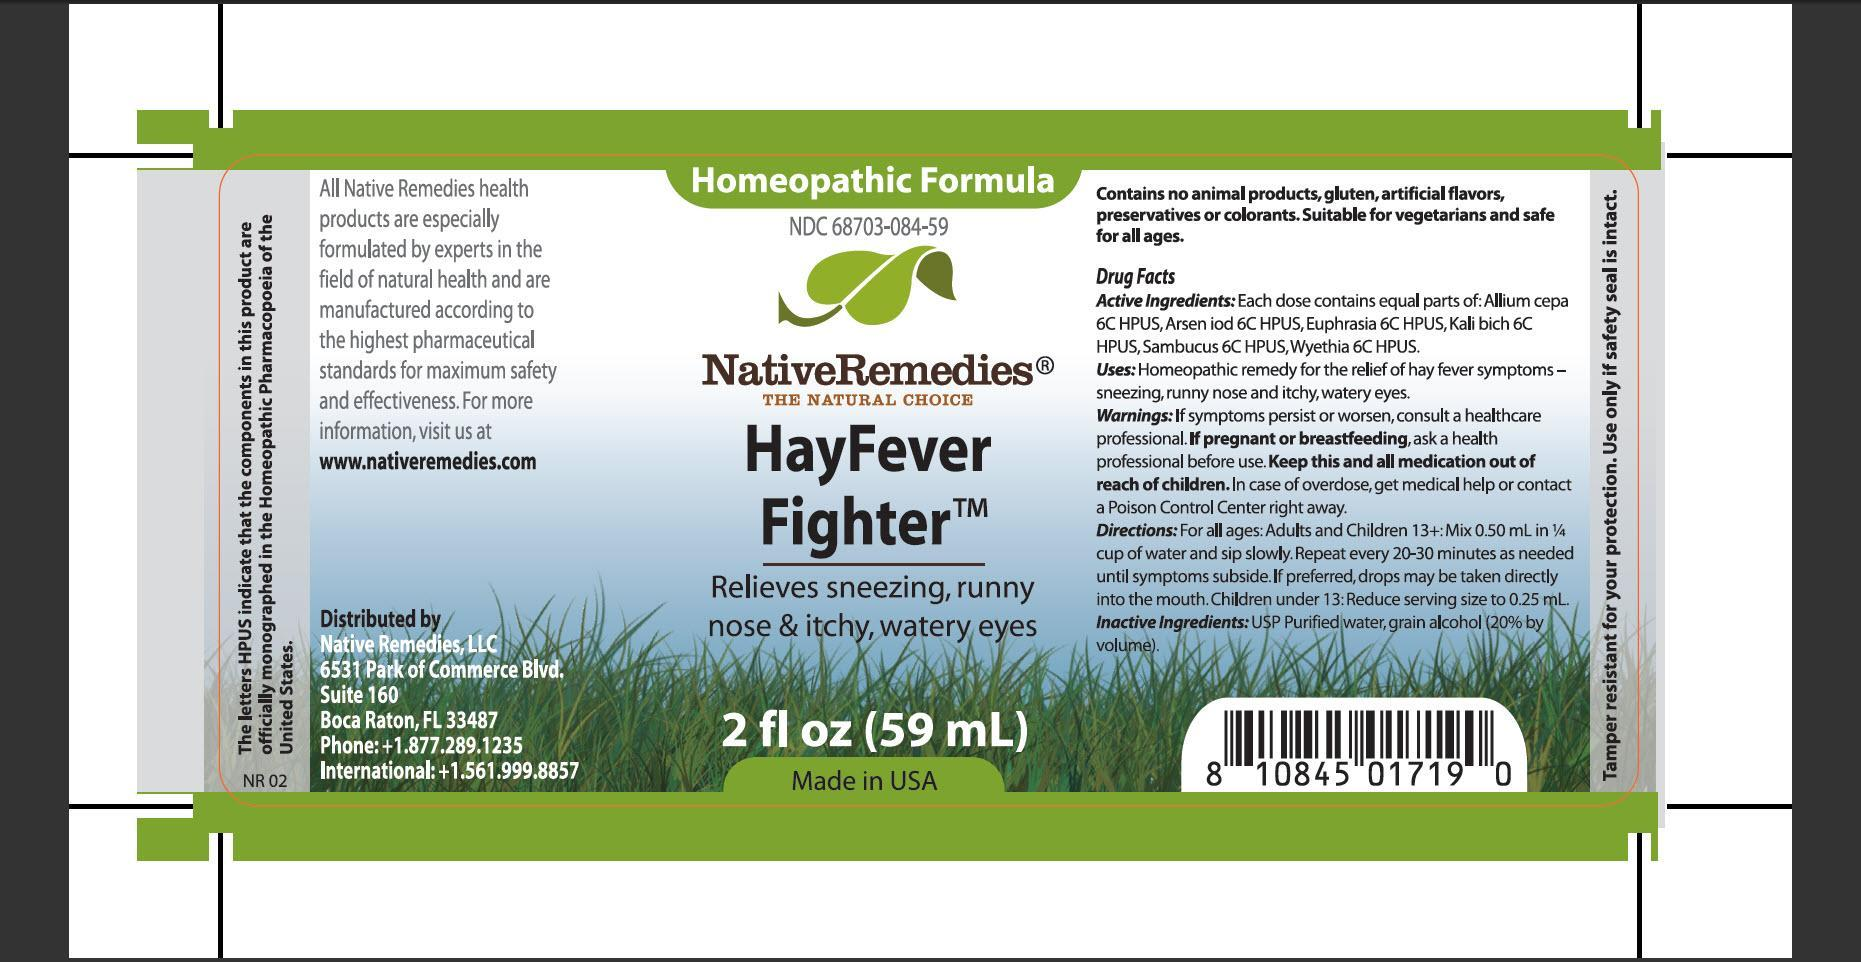 Hayfever Fighter (Allium Cepa, Arsen Iod, Euphrasia, Kali Bich, Sambucus, Wyethia) Tincture [Native Remedies, Llc]